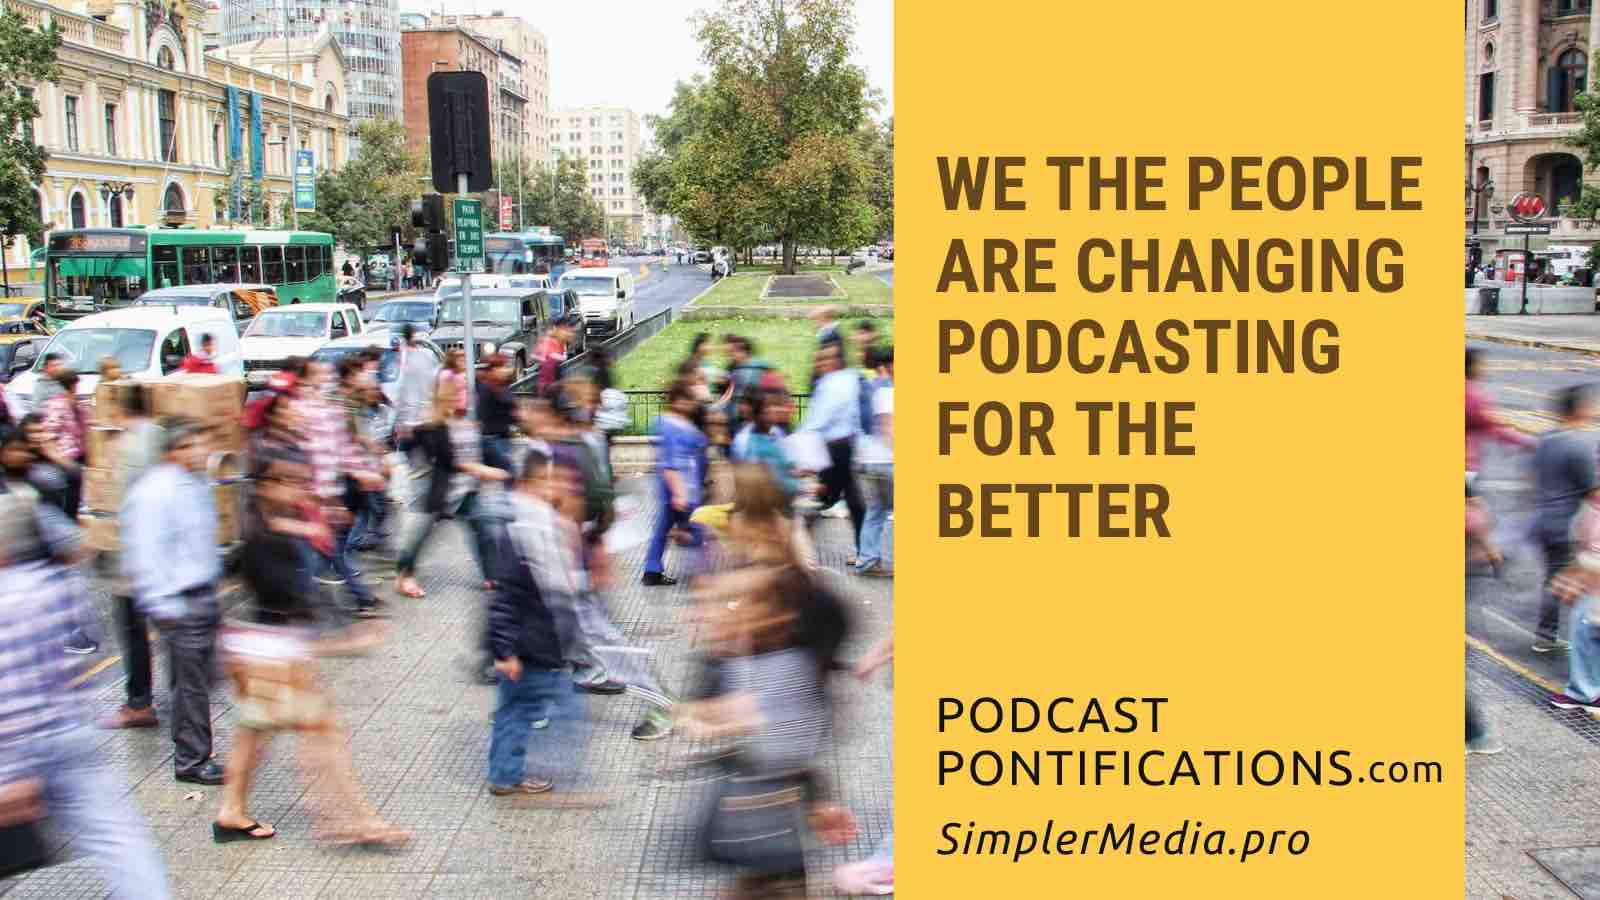 We The People Are Changing Podcasting For The Better